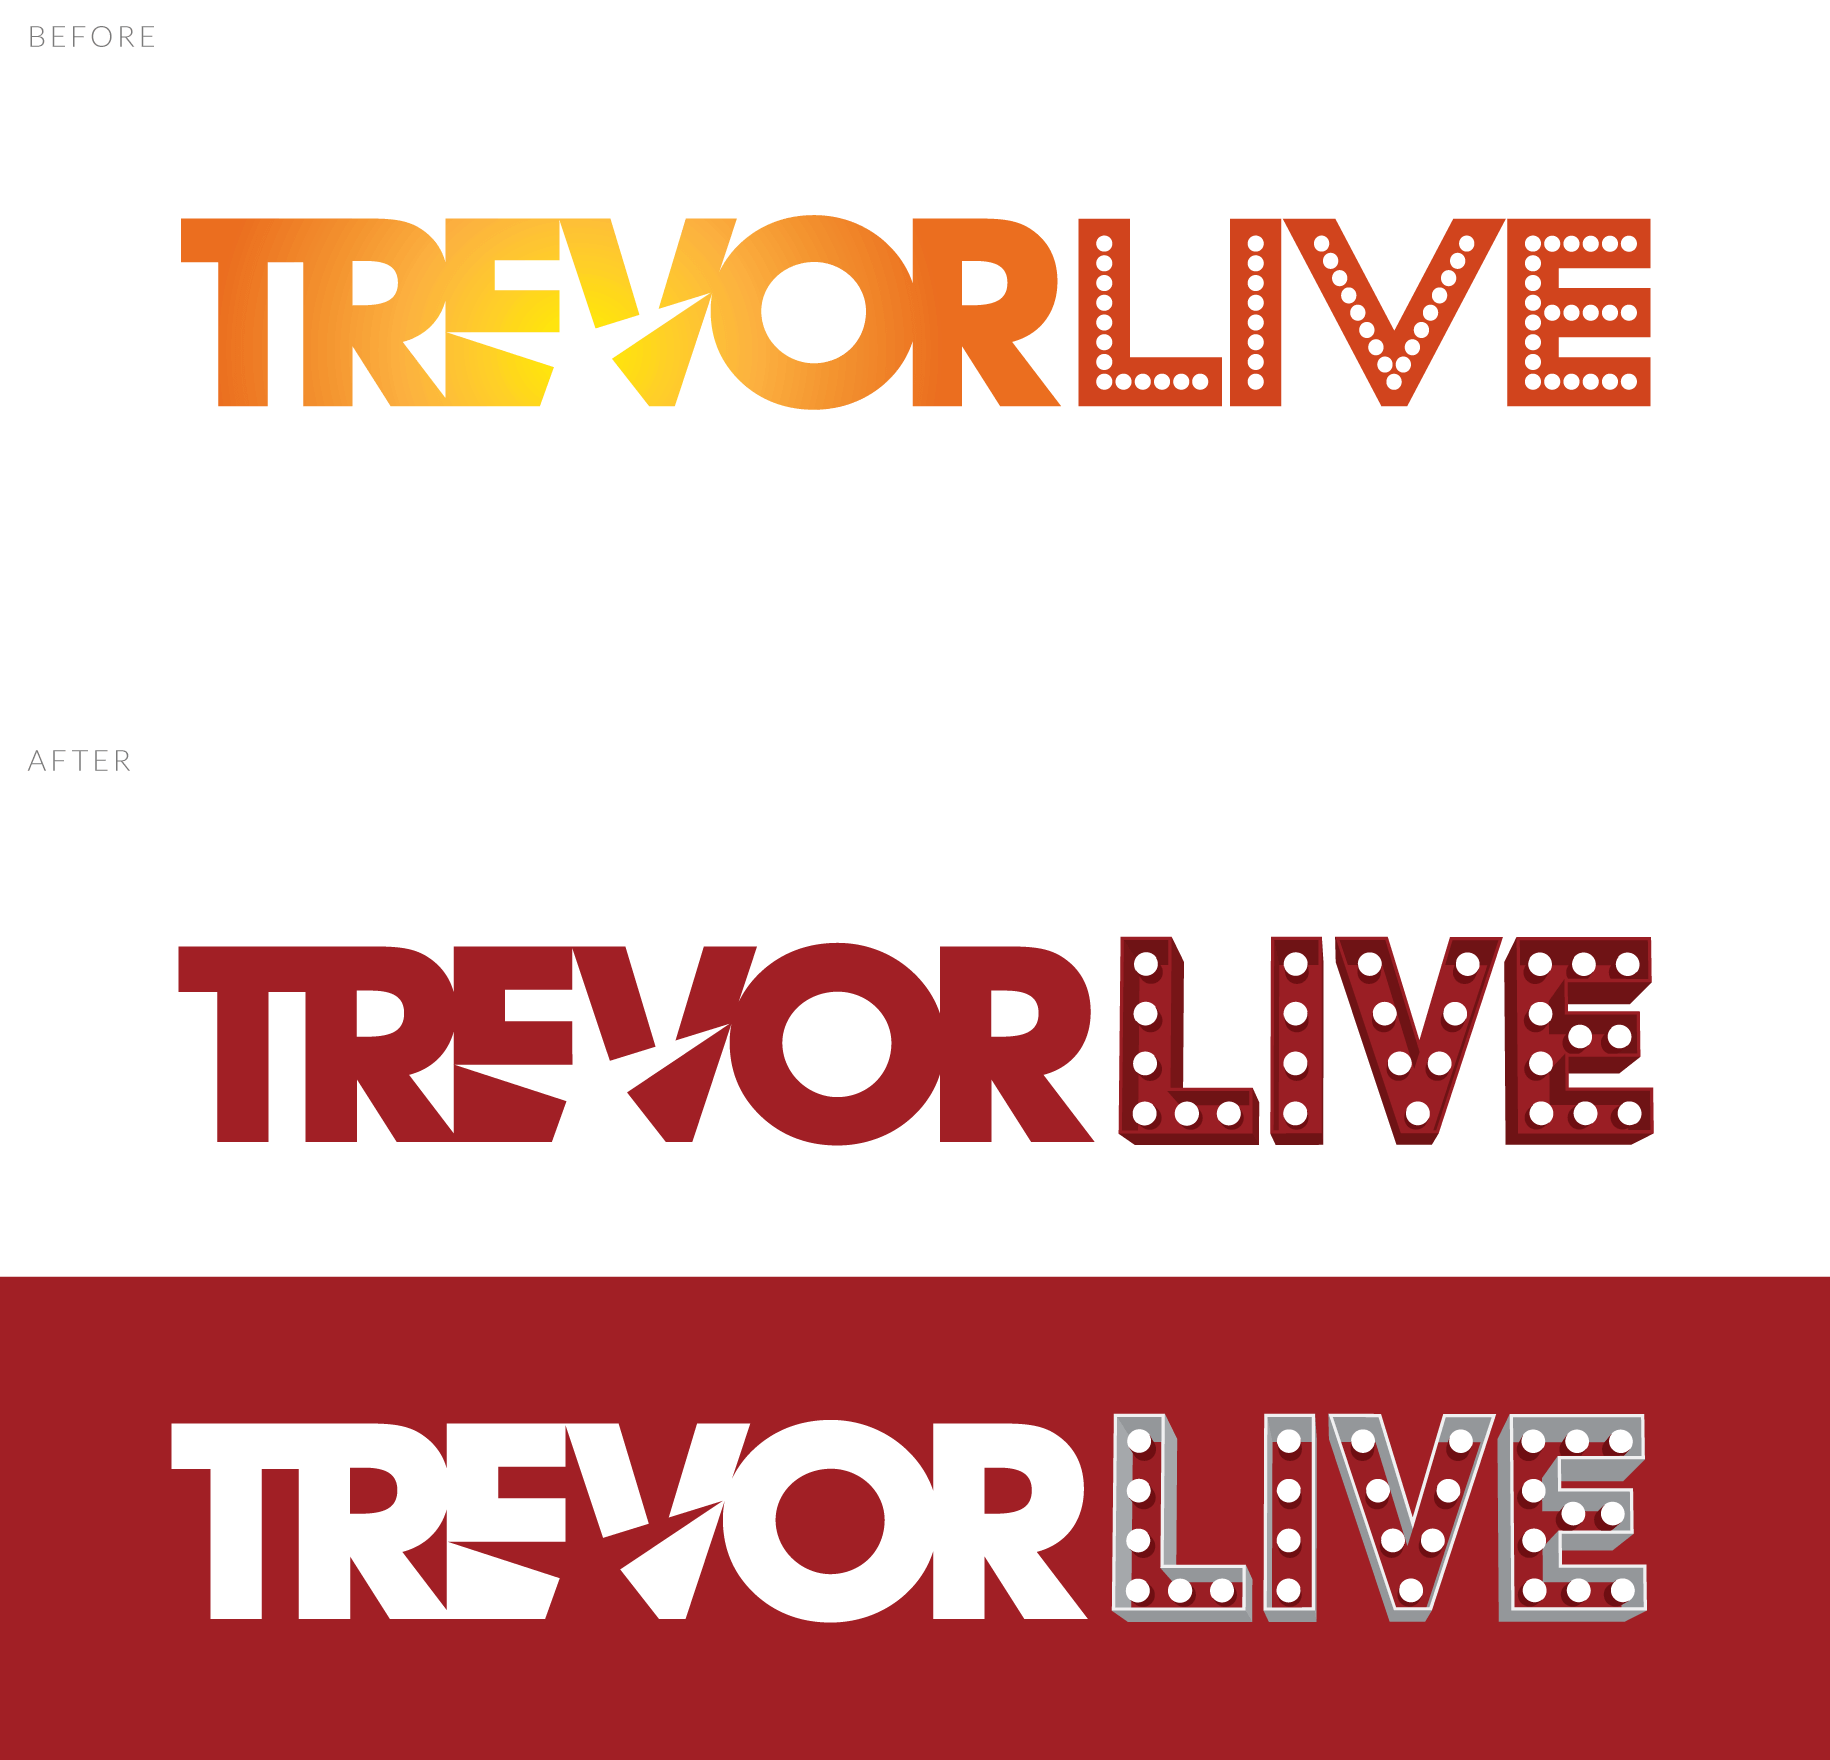 TrevorLIVE Logo Before & After